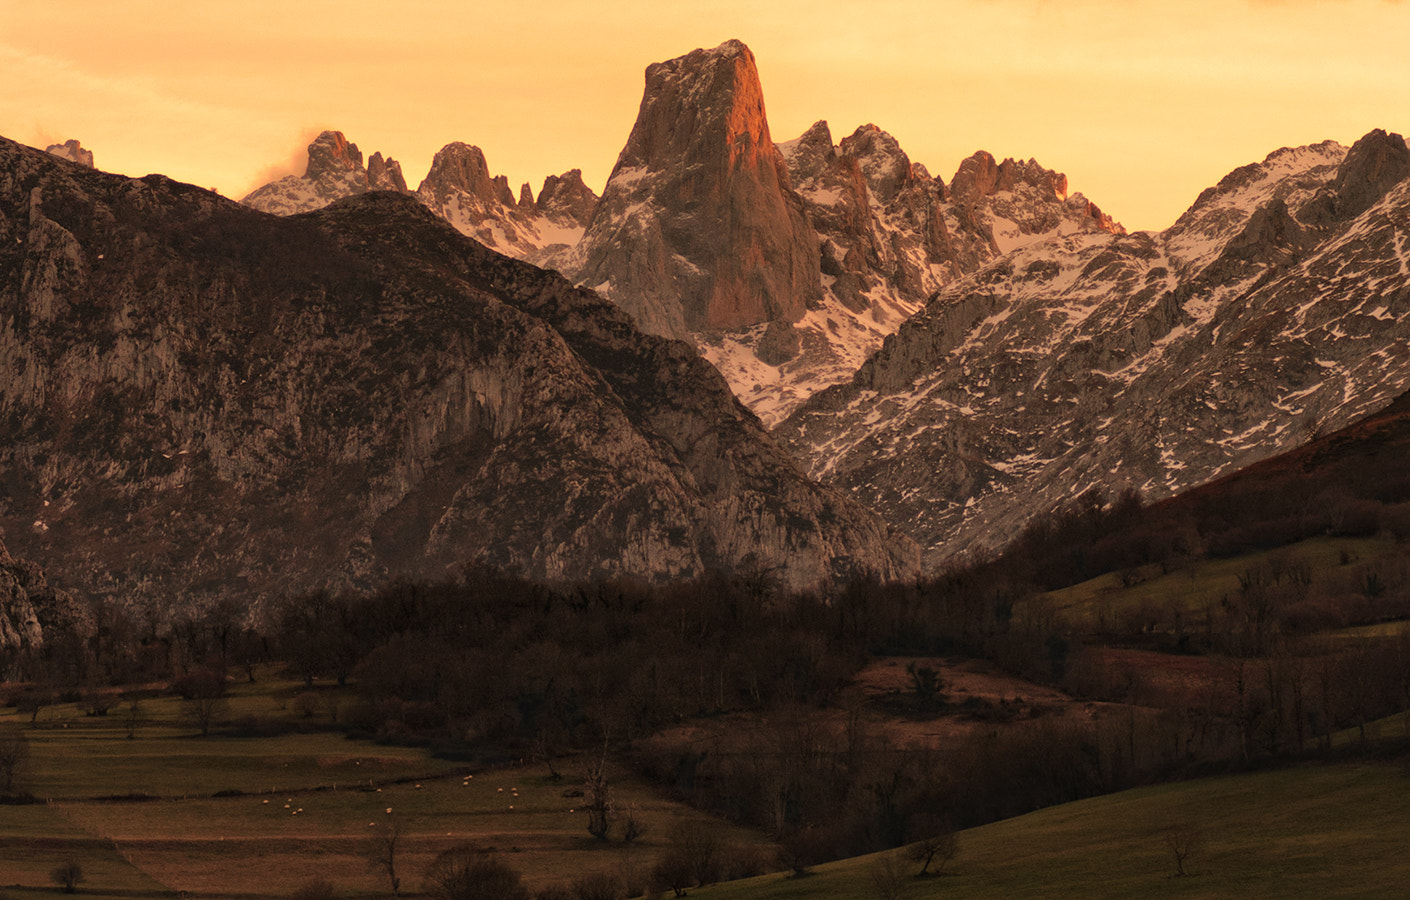 Photograph Picos de Europa by Saghani  on 500px